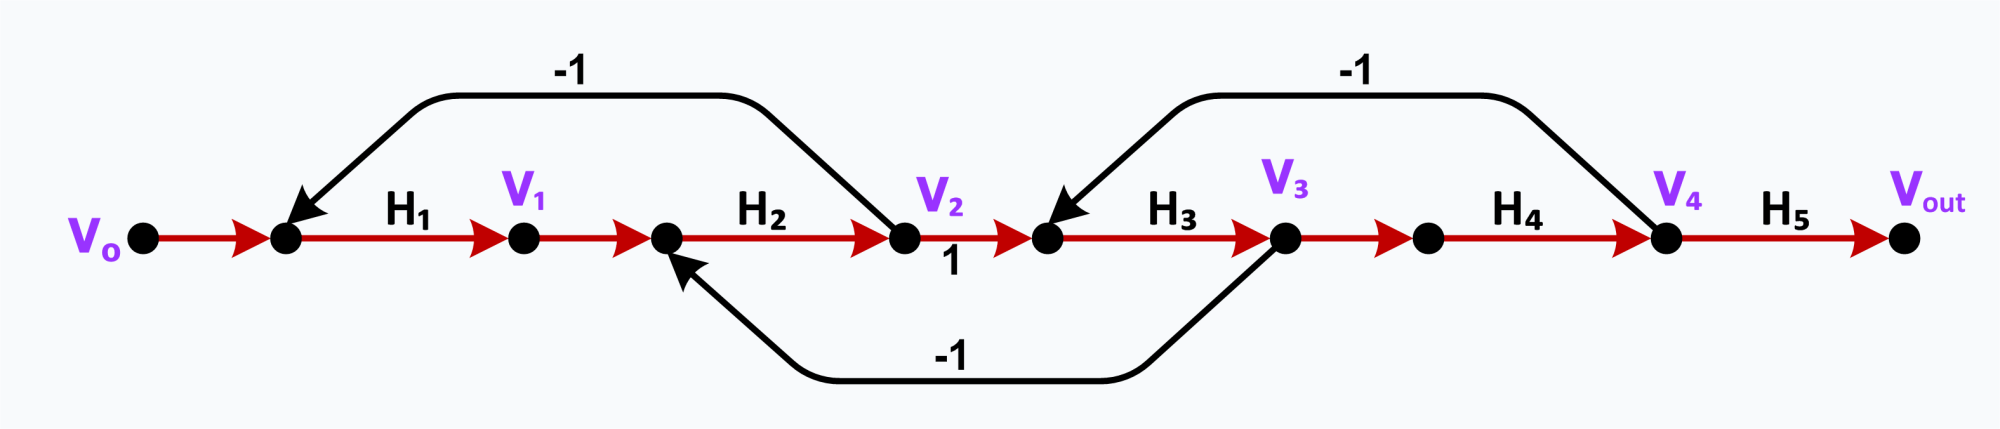 hight resolution of file passive band pass filter signal flow graph scaled png